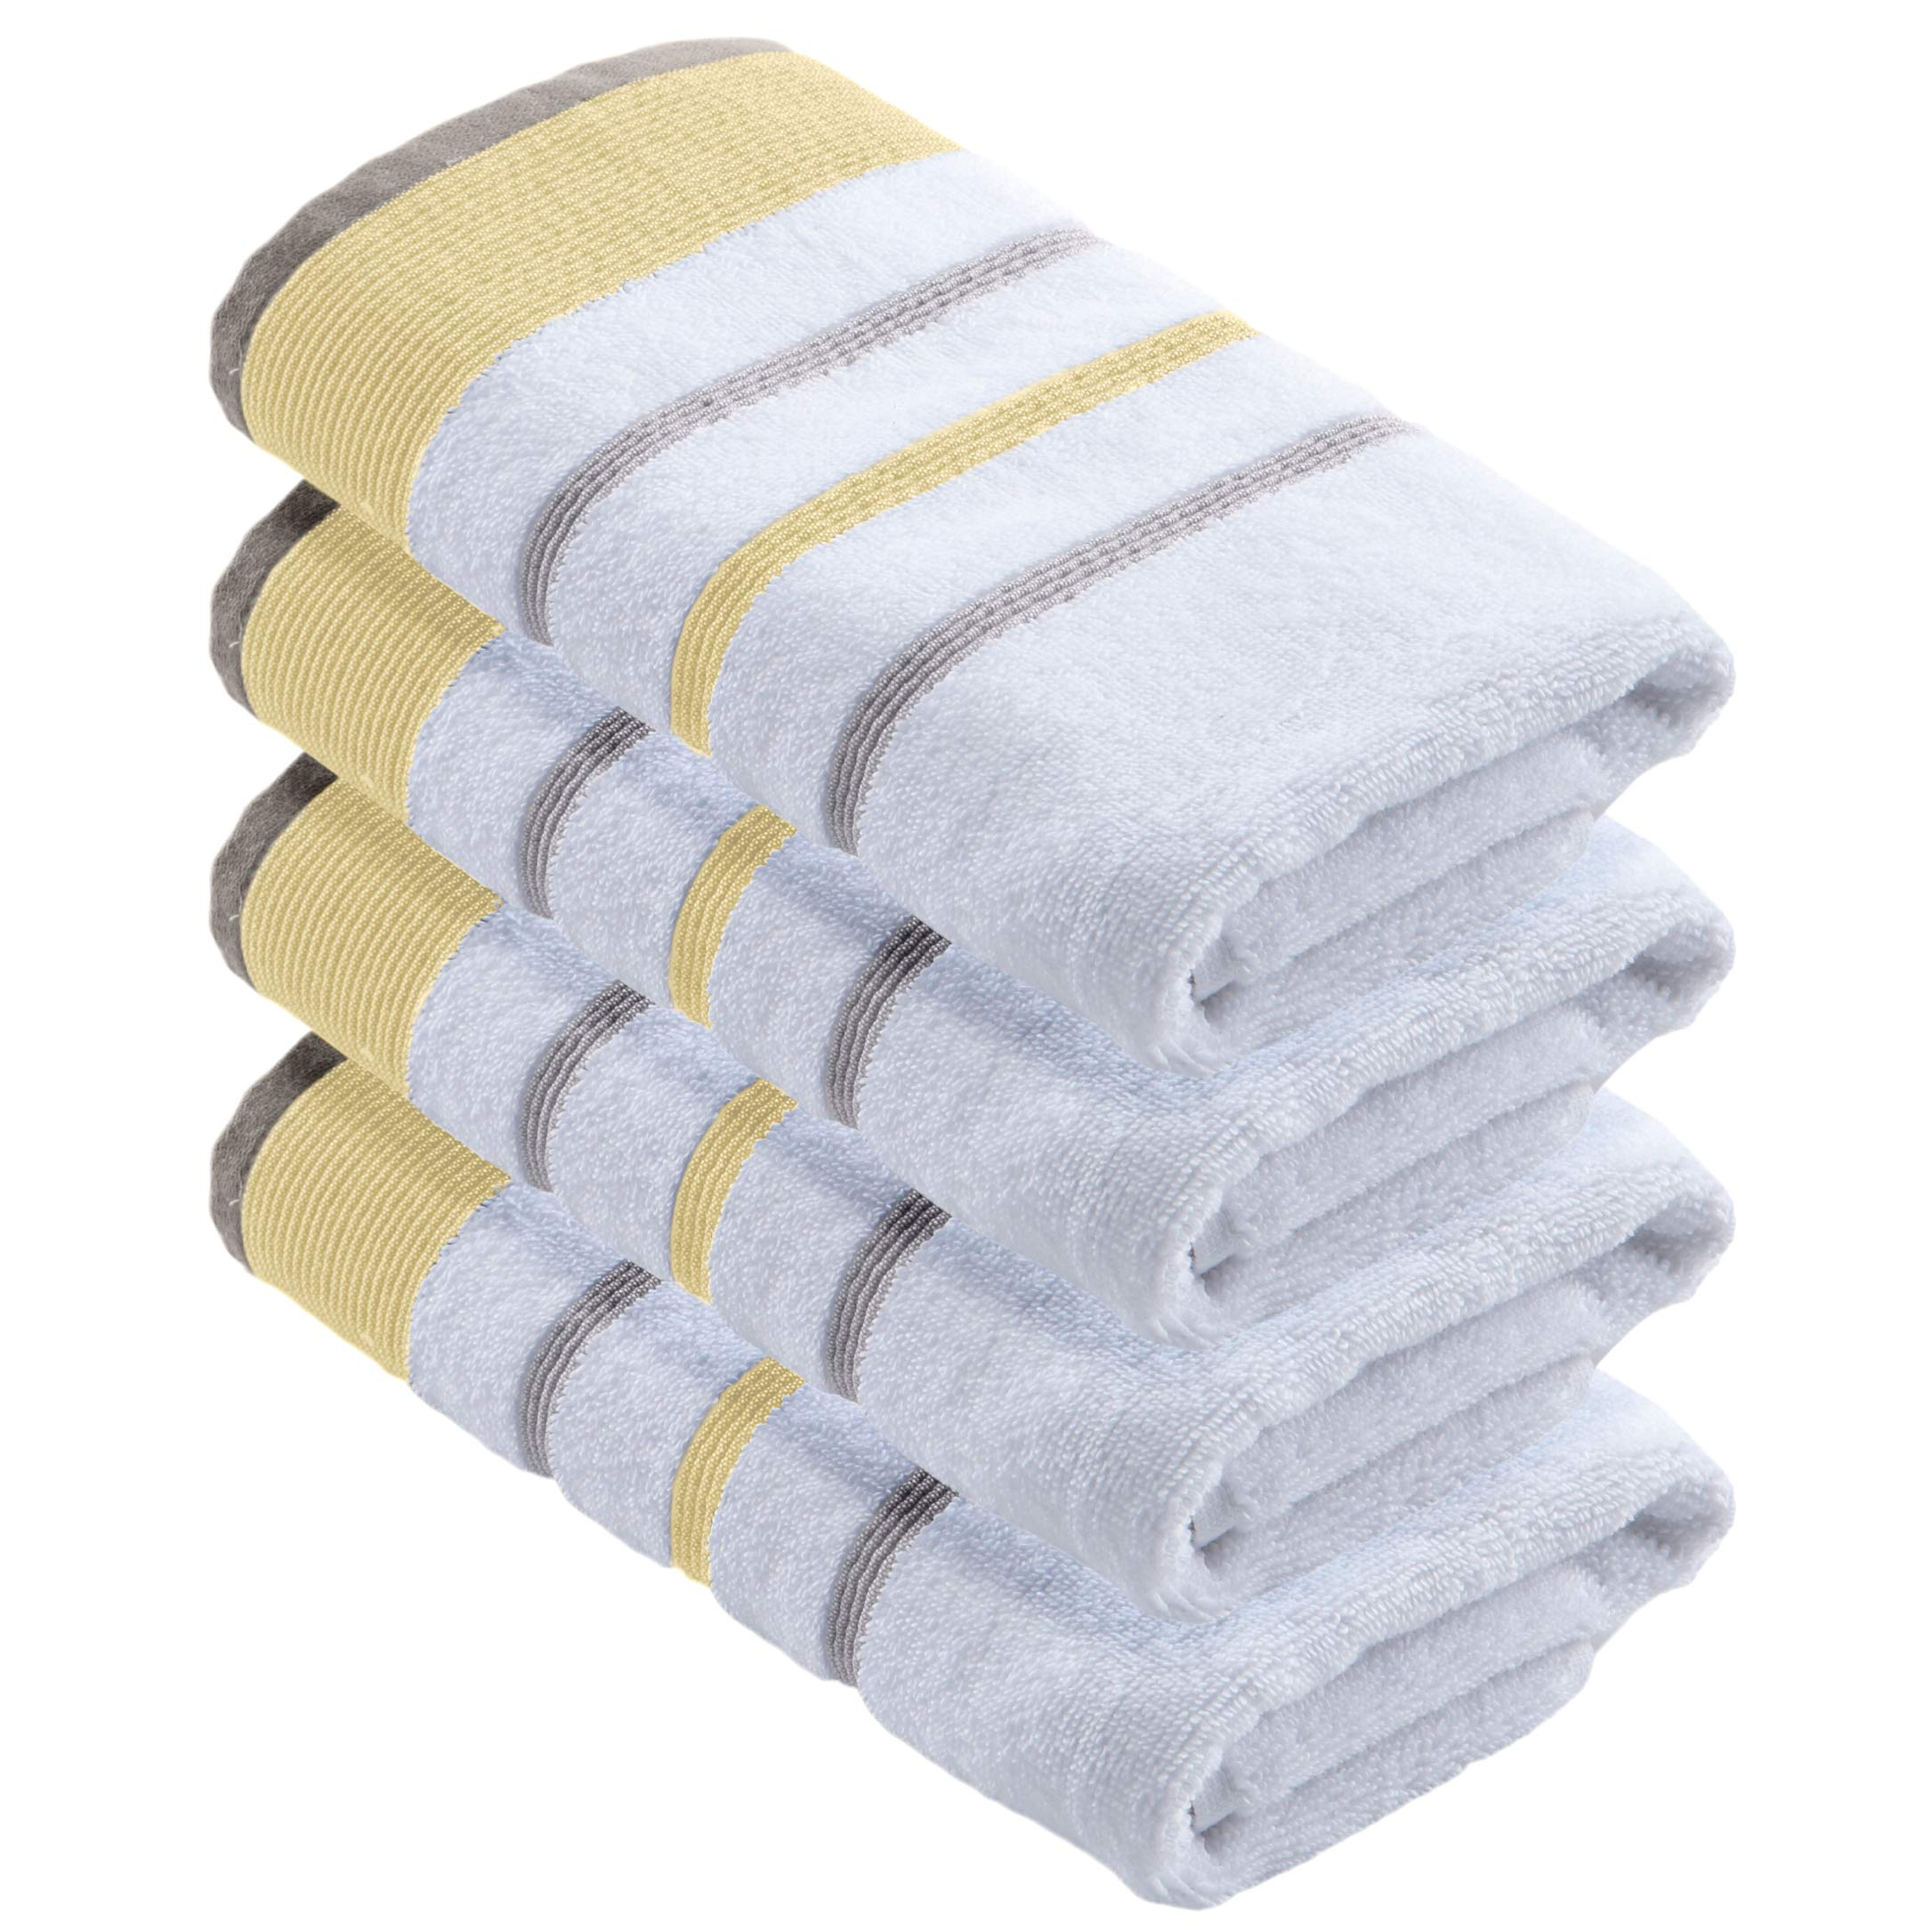 Great Bay Home 4-Pack 100% Turkish Cotton Striped Decorative Hand Towels, Soft, Ultra-Absorbant. Includes 4 Hand Towels. Noelle Collection Brand. (Hand Towels, Gold/Grey)